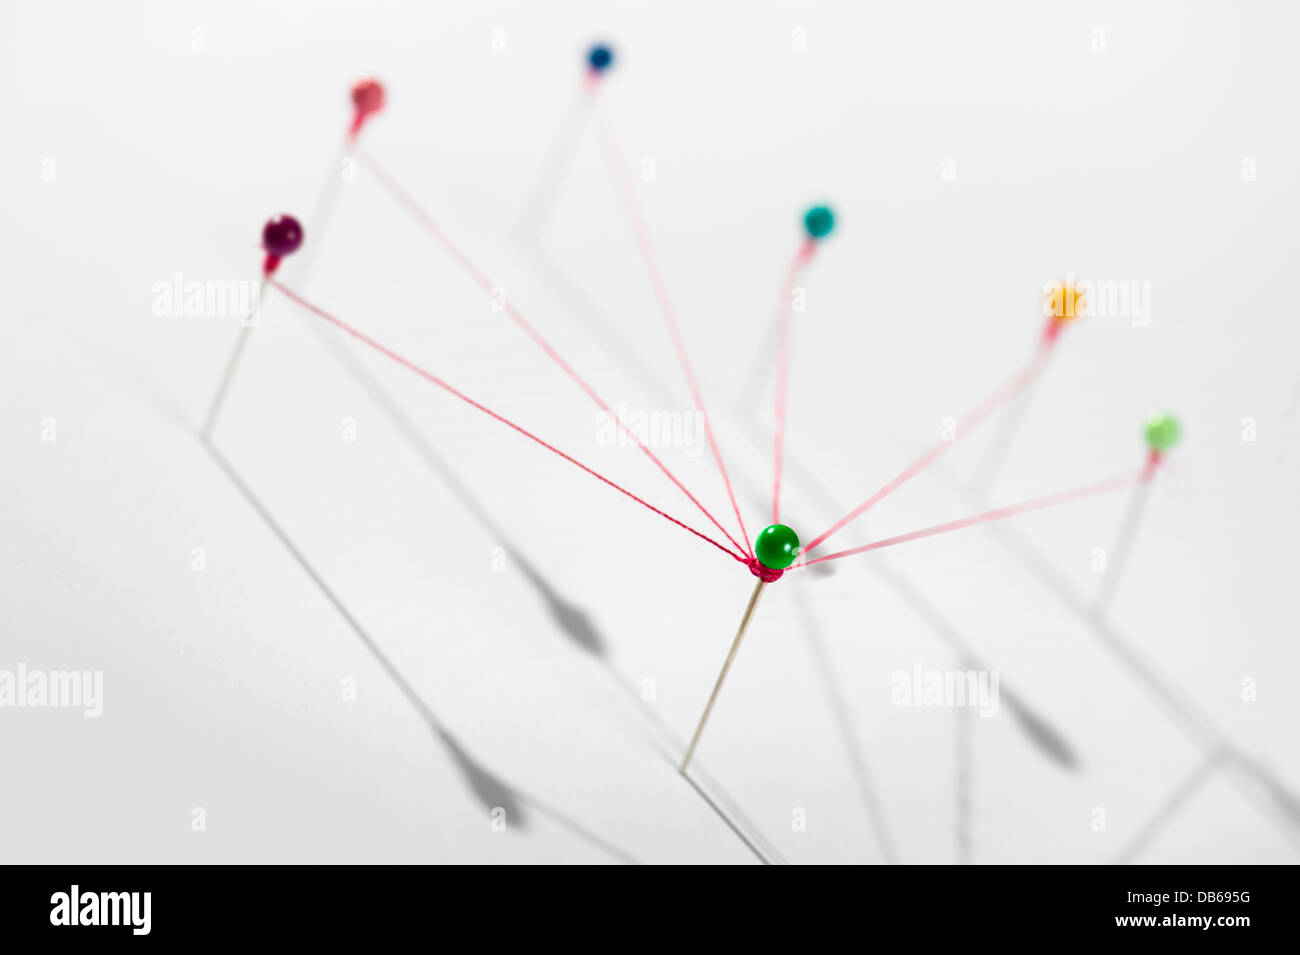 Social Networking Represented By Pins & String - Stock Image